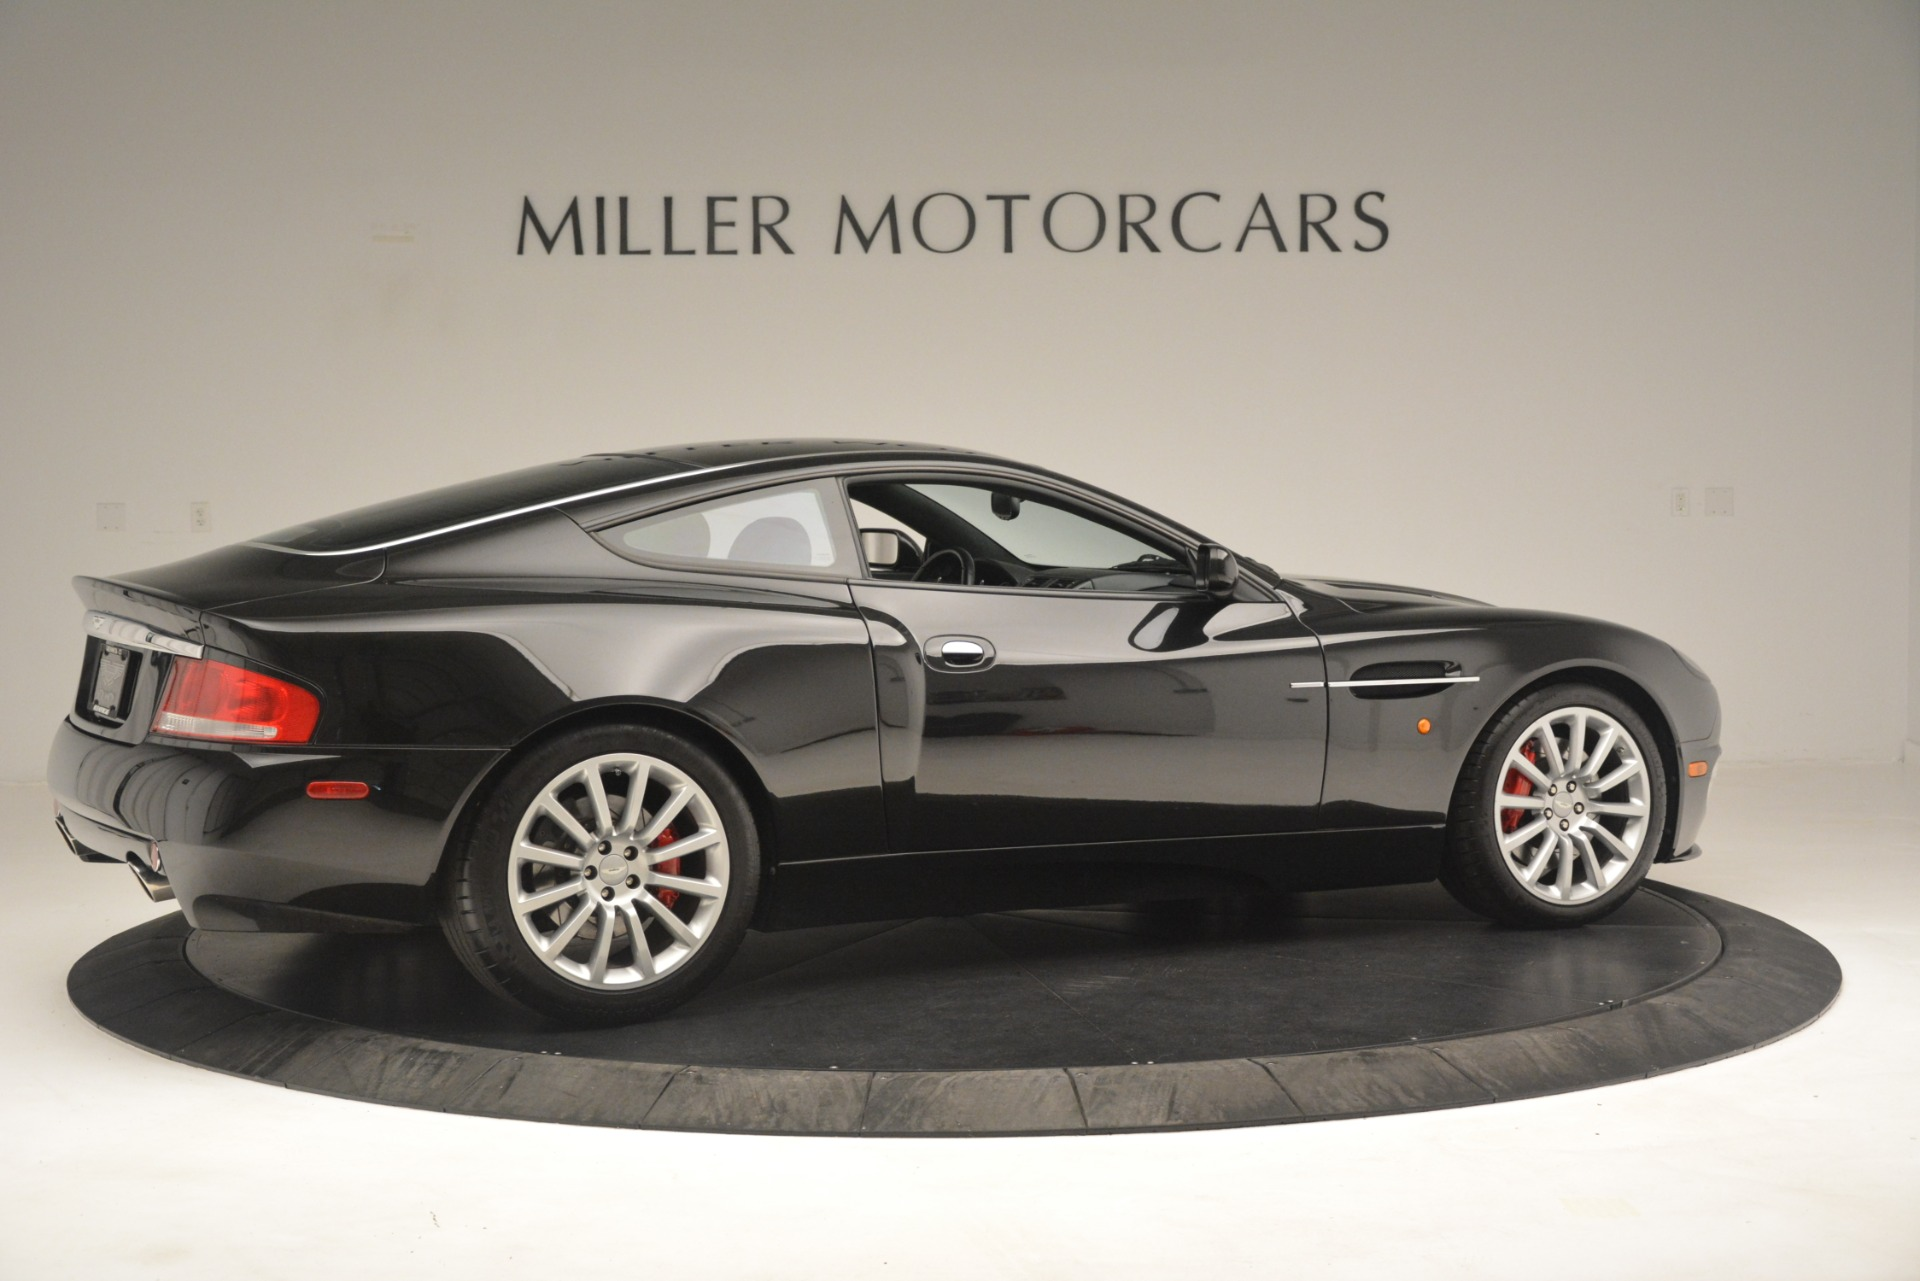 Used 2004 Aston Martin V12 Vanquish  For Sale In Westport, CT 3160_p8